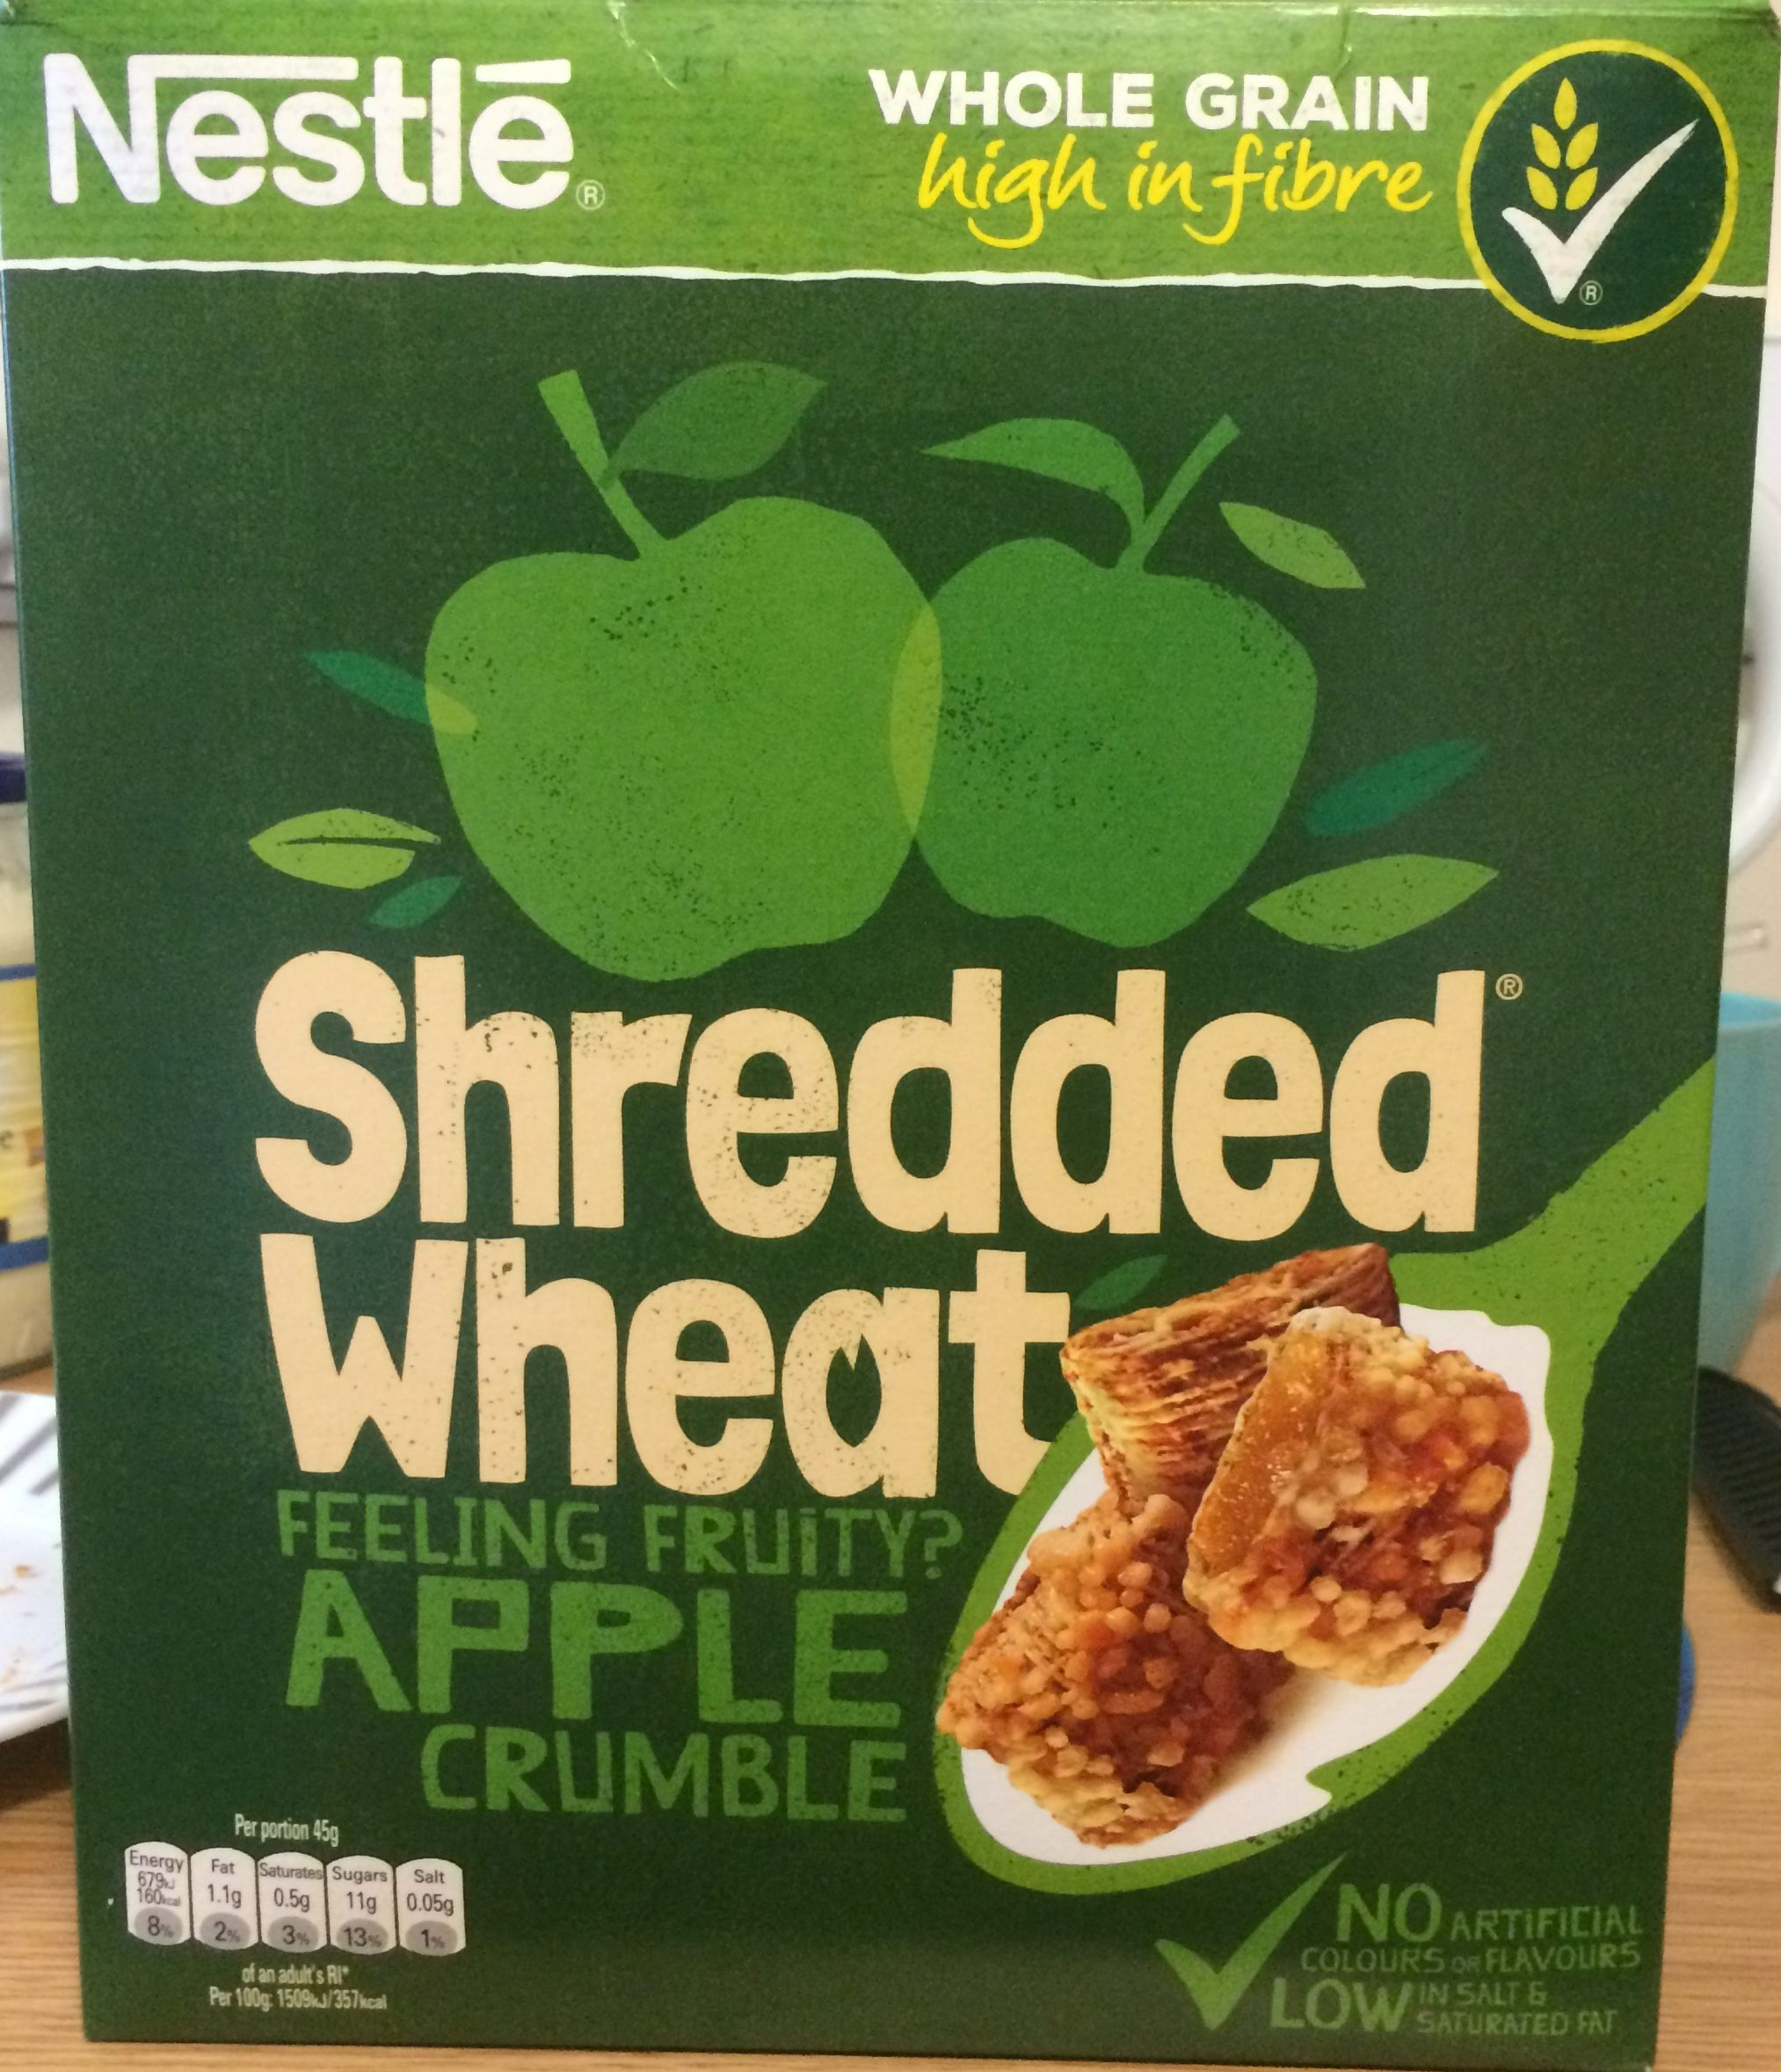 Shredded wheat apple crumble - Product